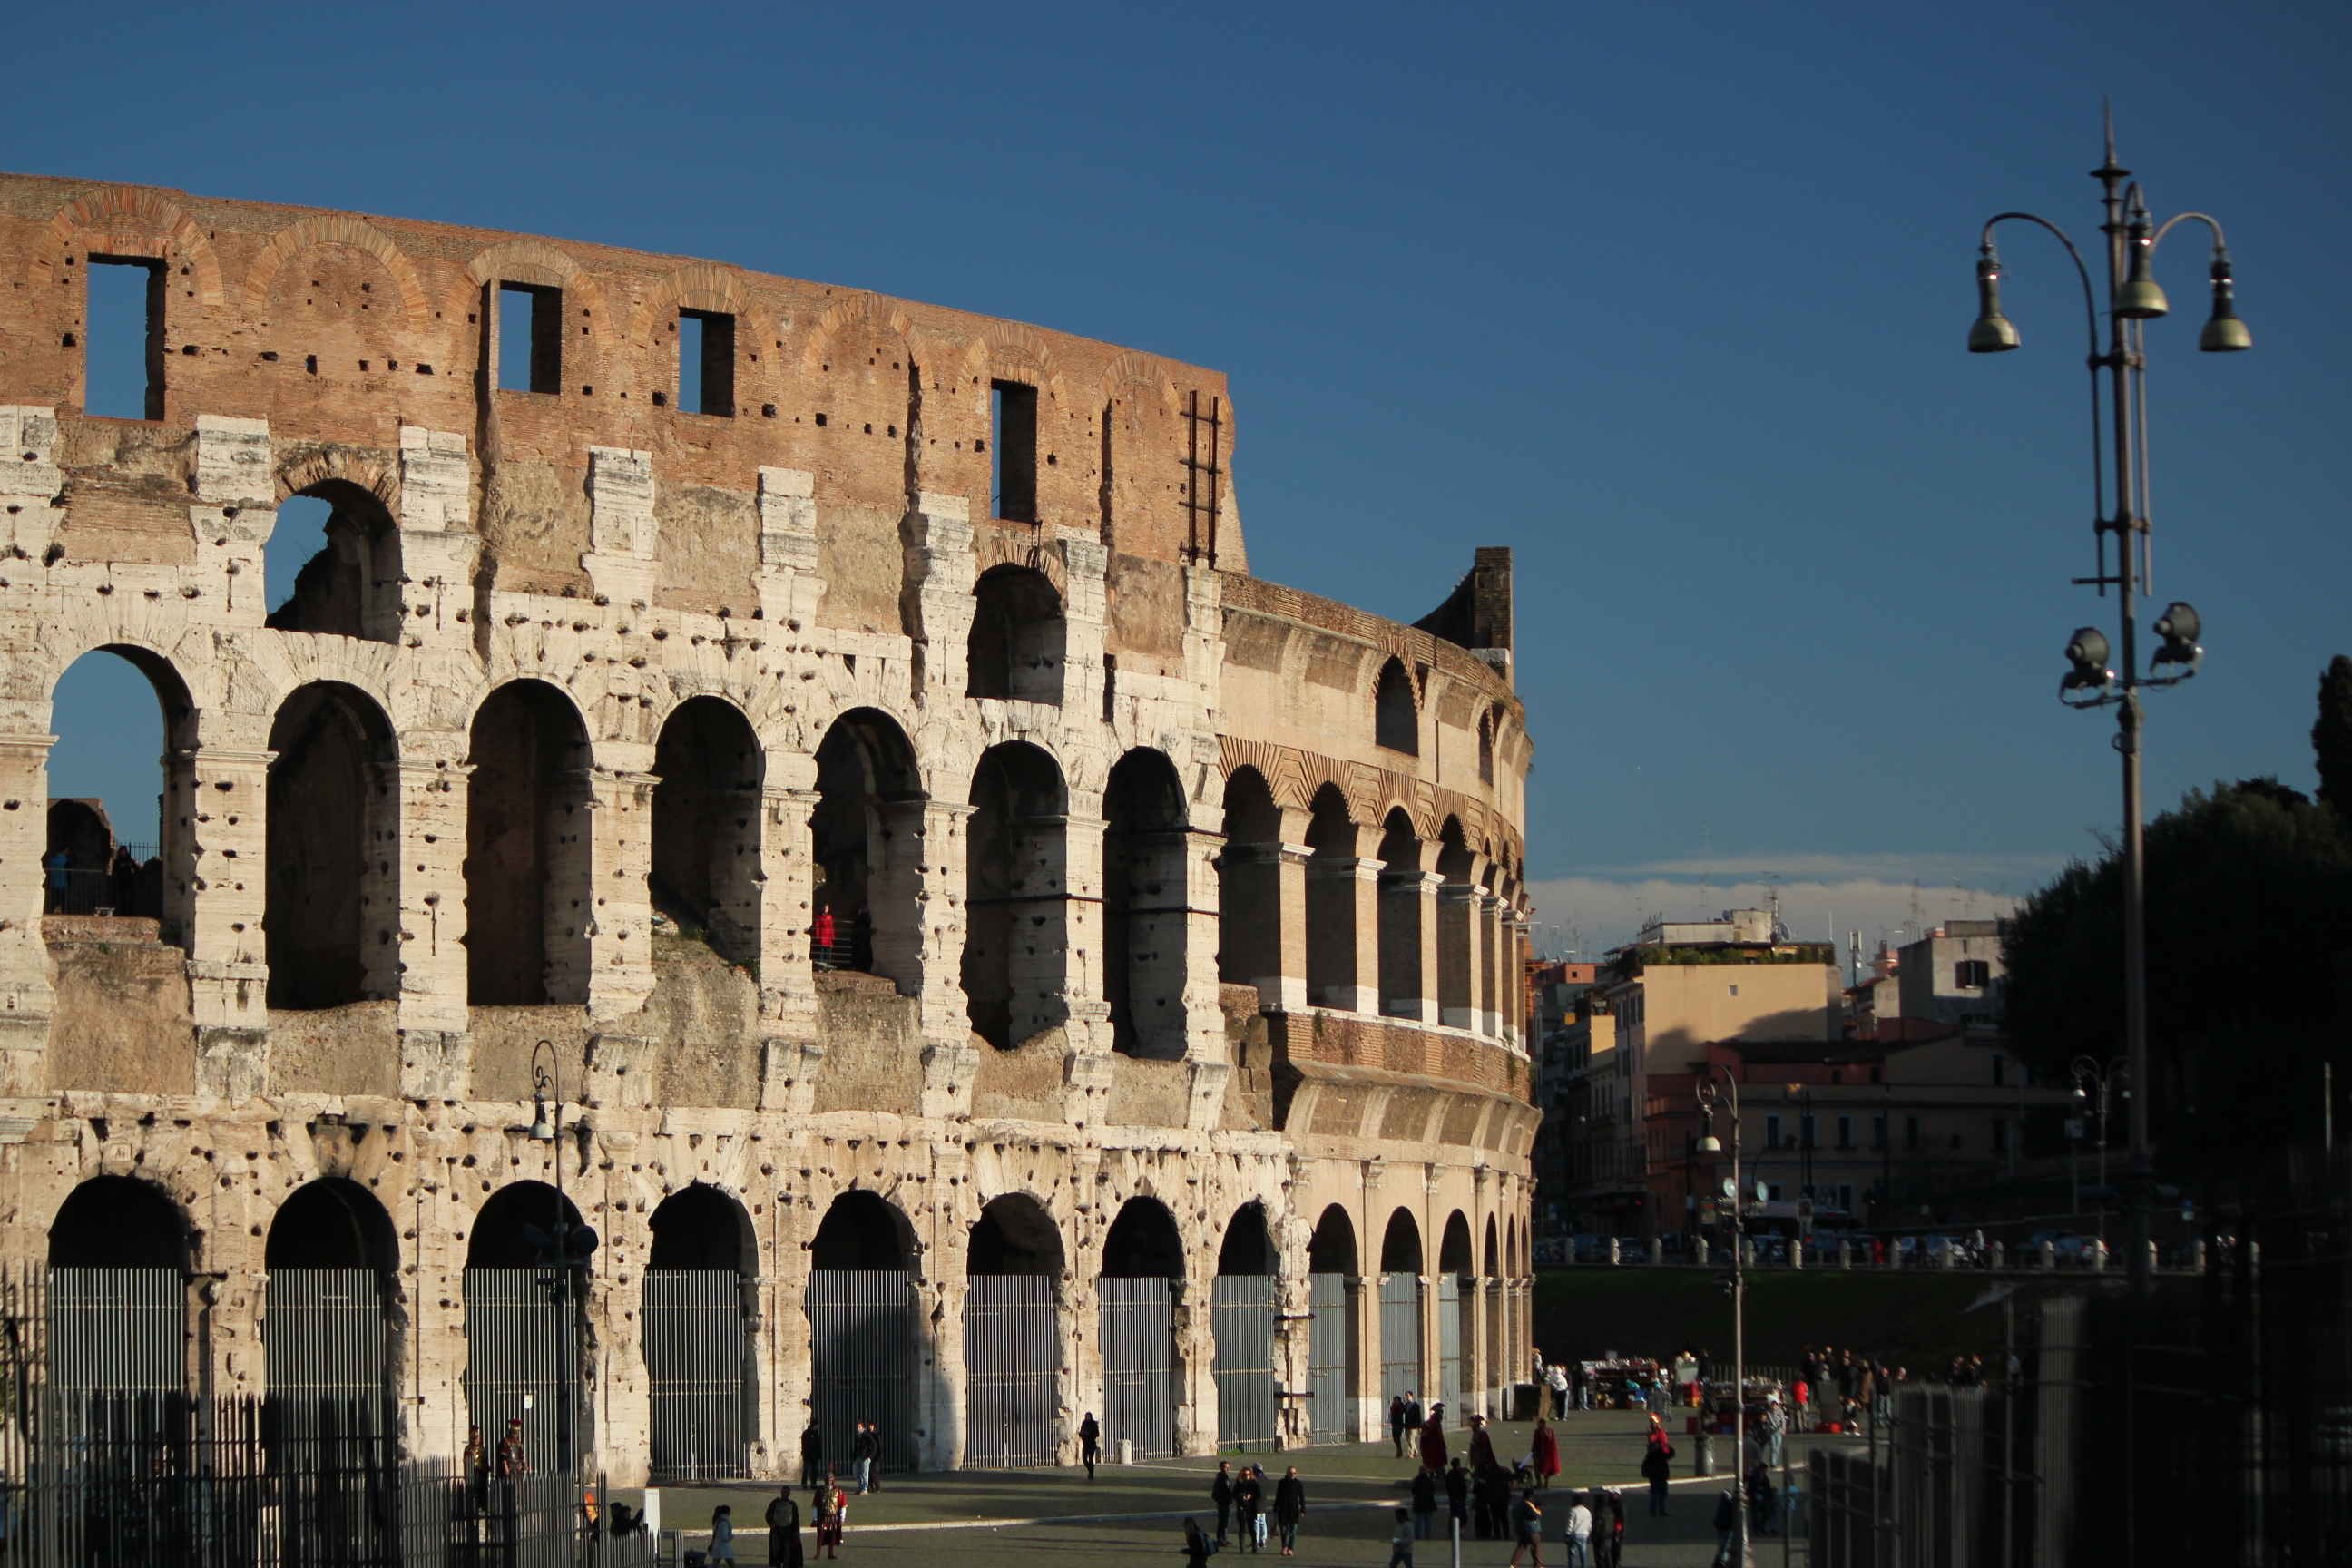 The Colosseum; Rome, Italy; 2011